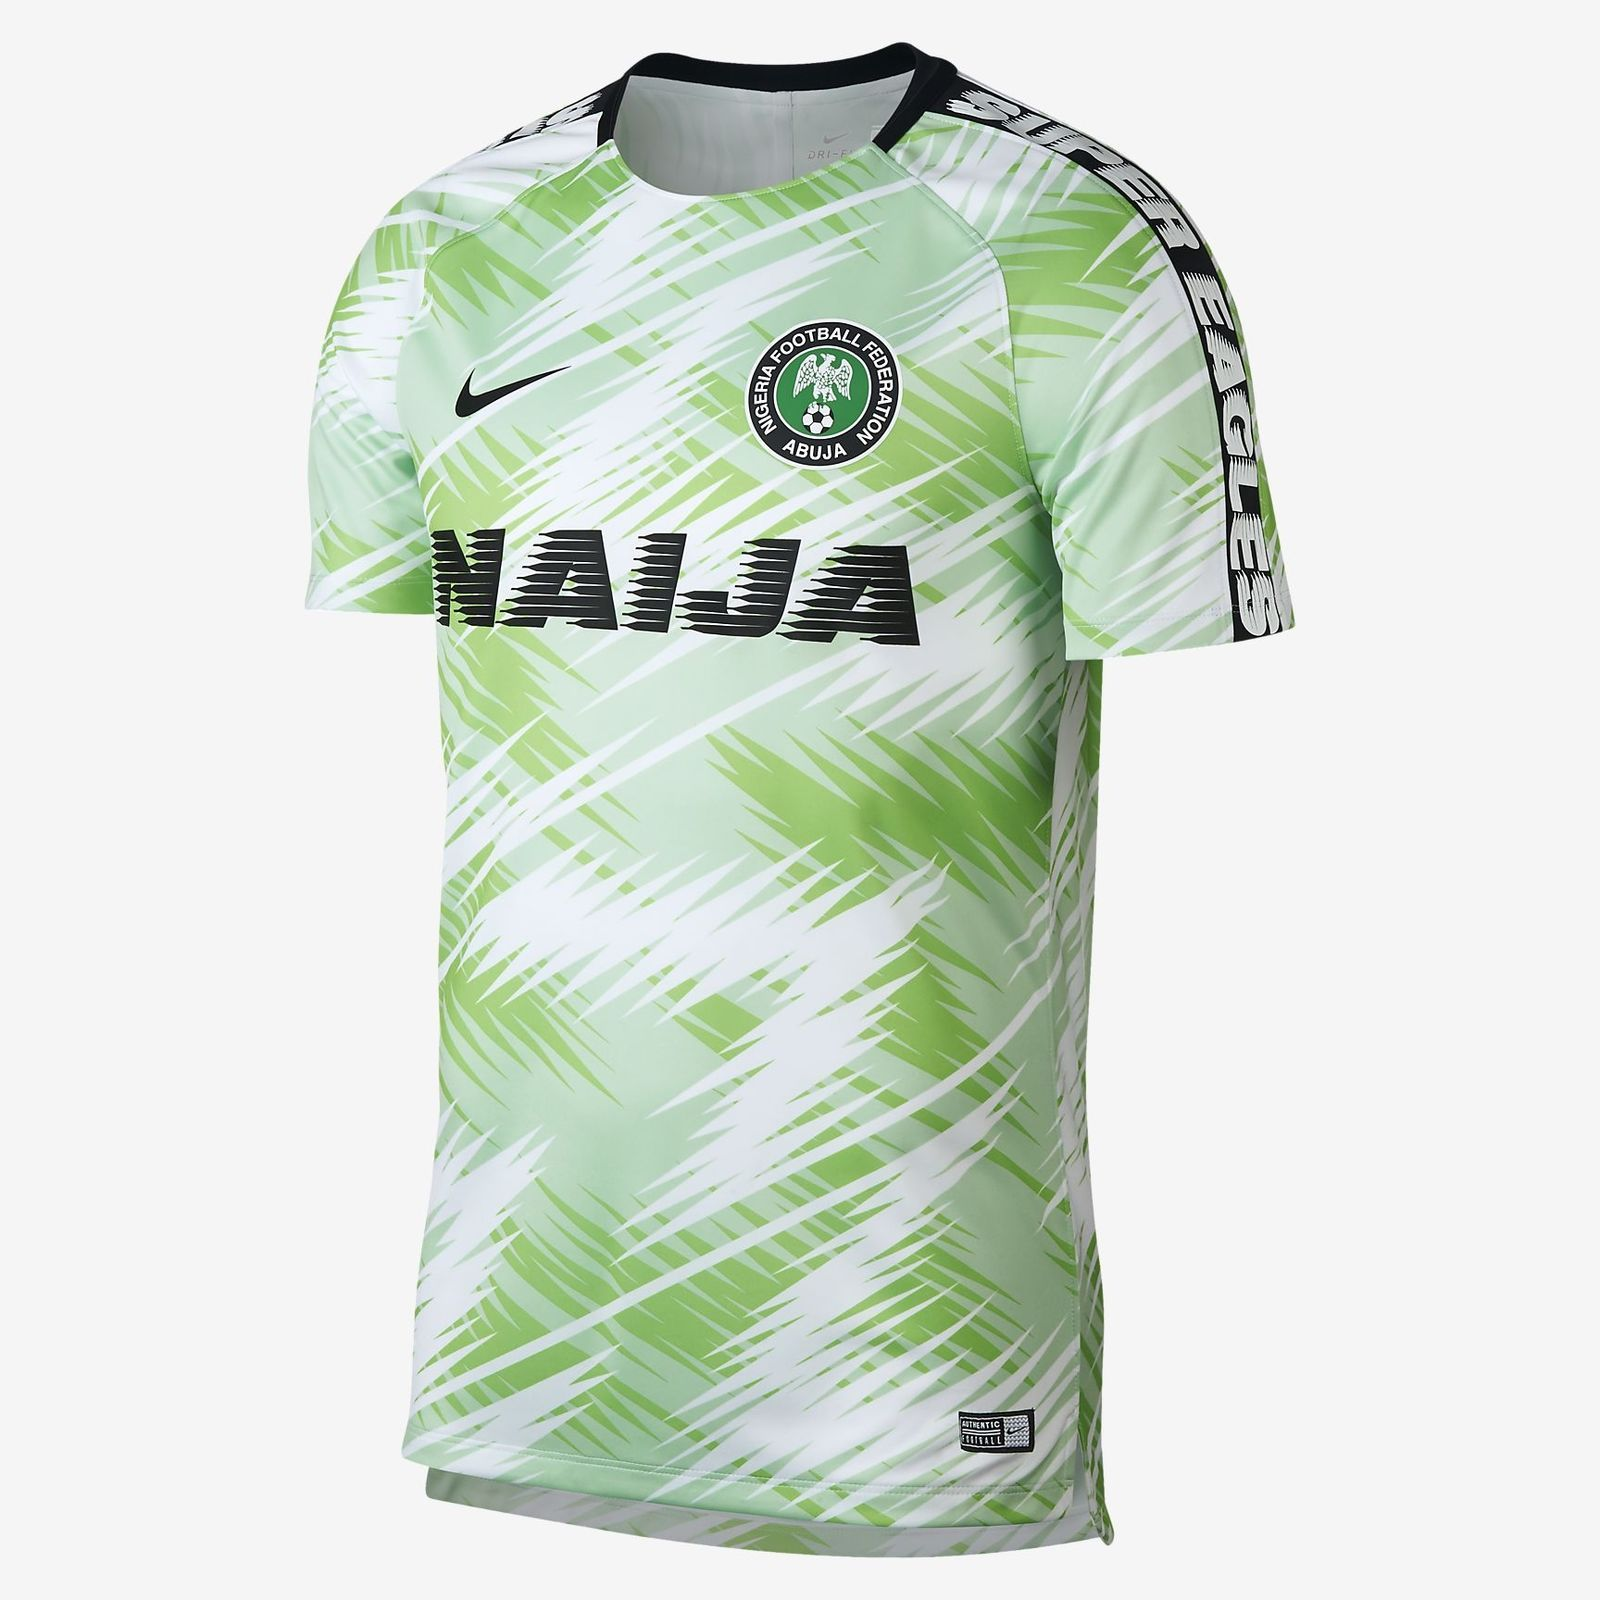 78730a0a9 2018 Nike Nigeria Dri-FIT Squad Men Top Soccer Jersey Small 893364-100 WORLD  CUP Discount Price 139.99 Free Shipping Buy it Now